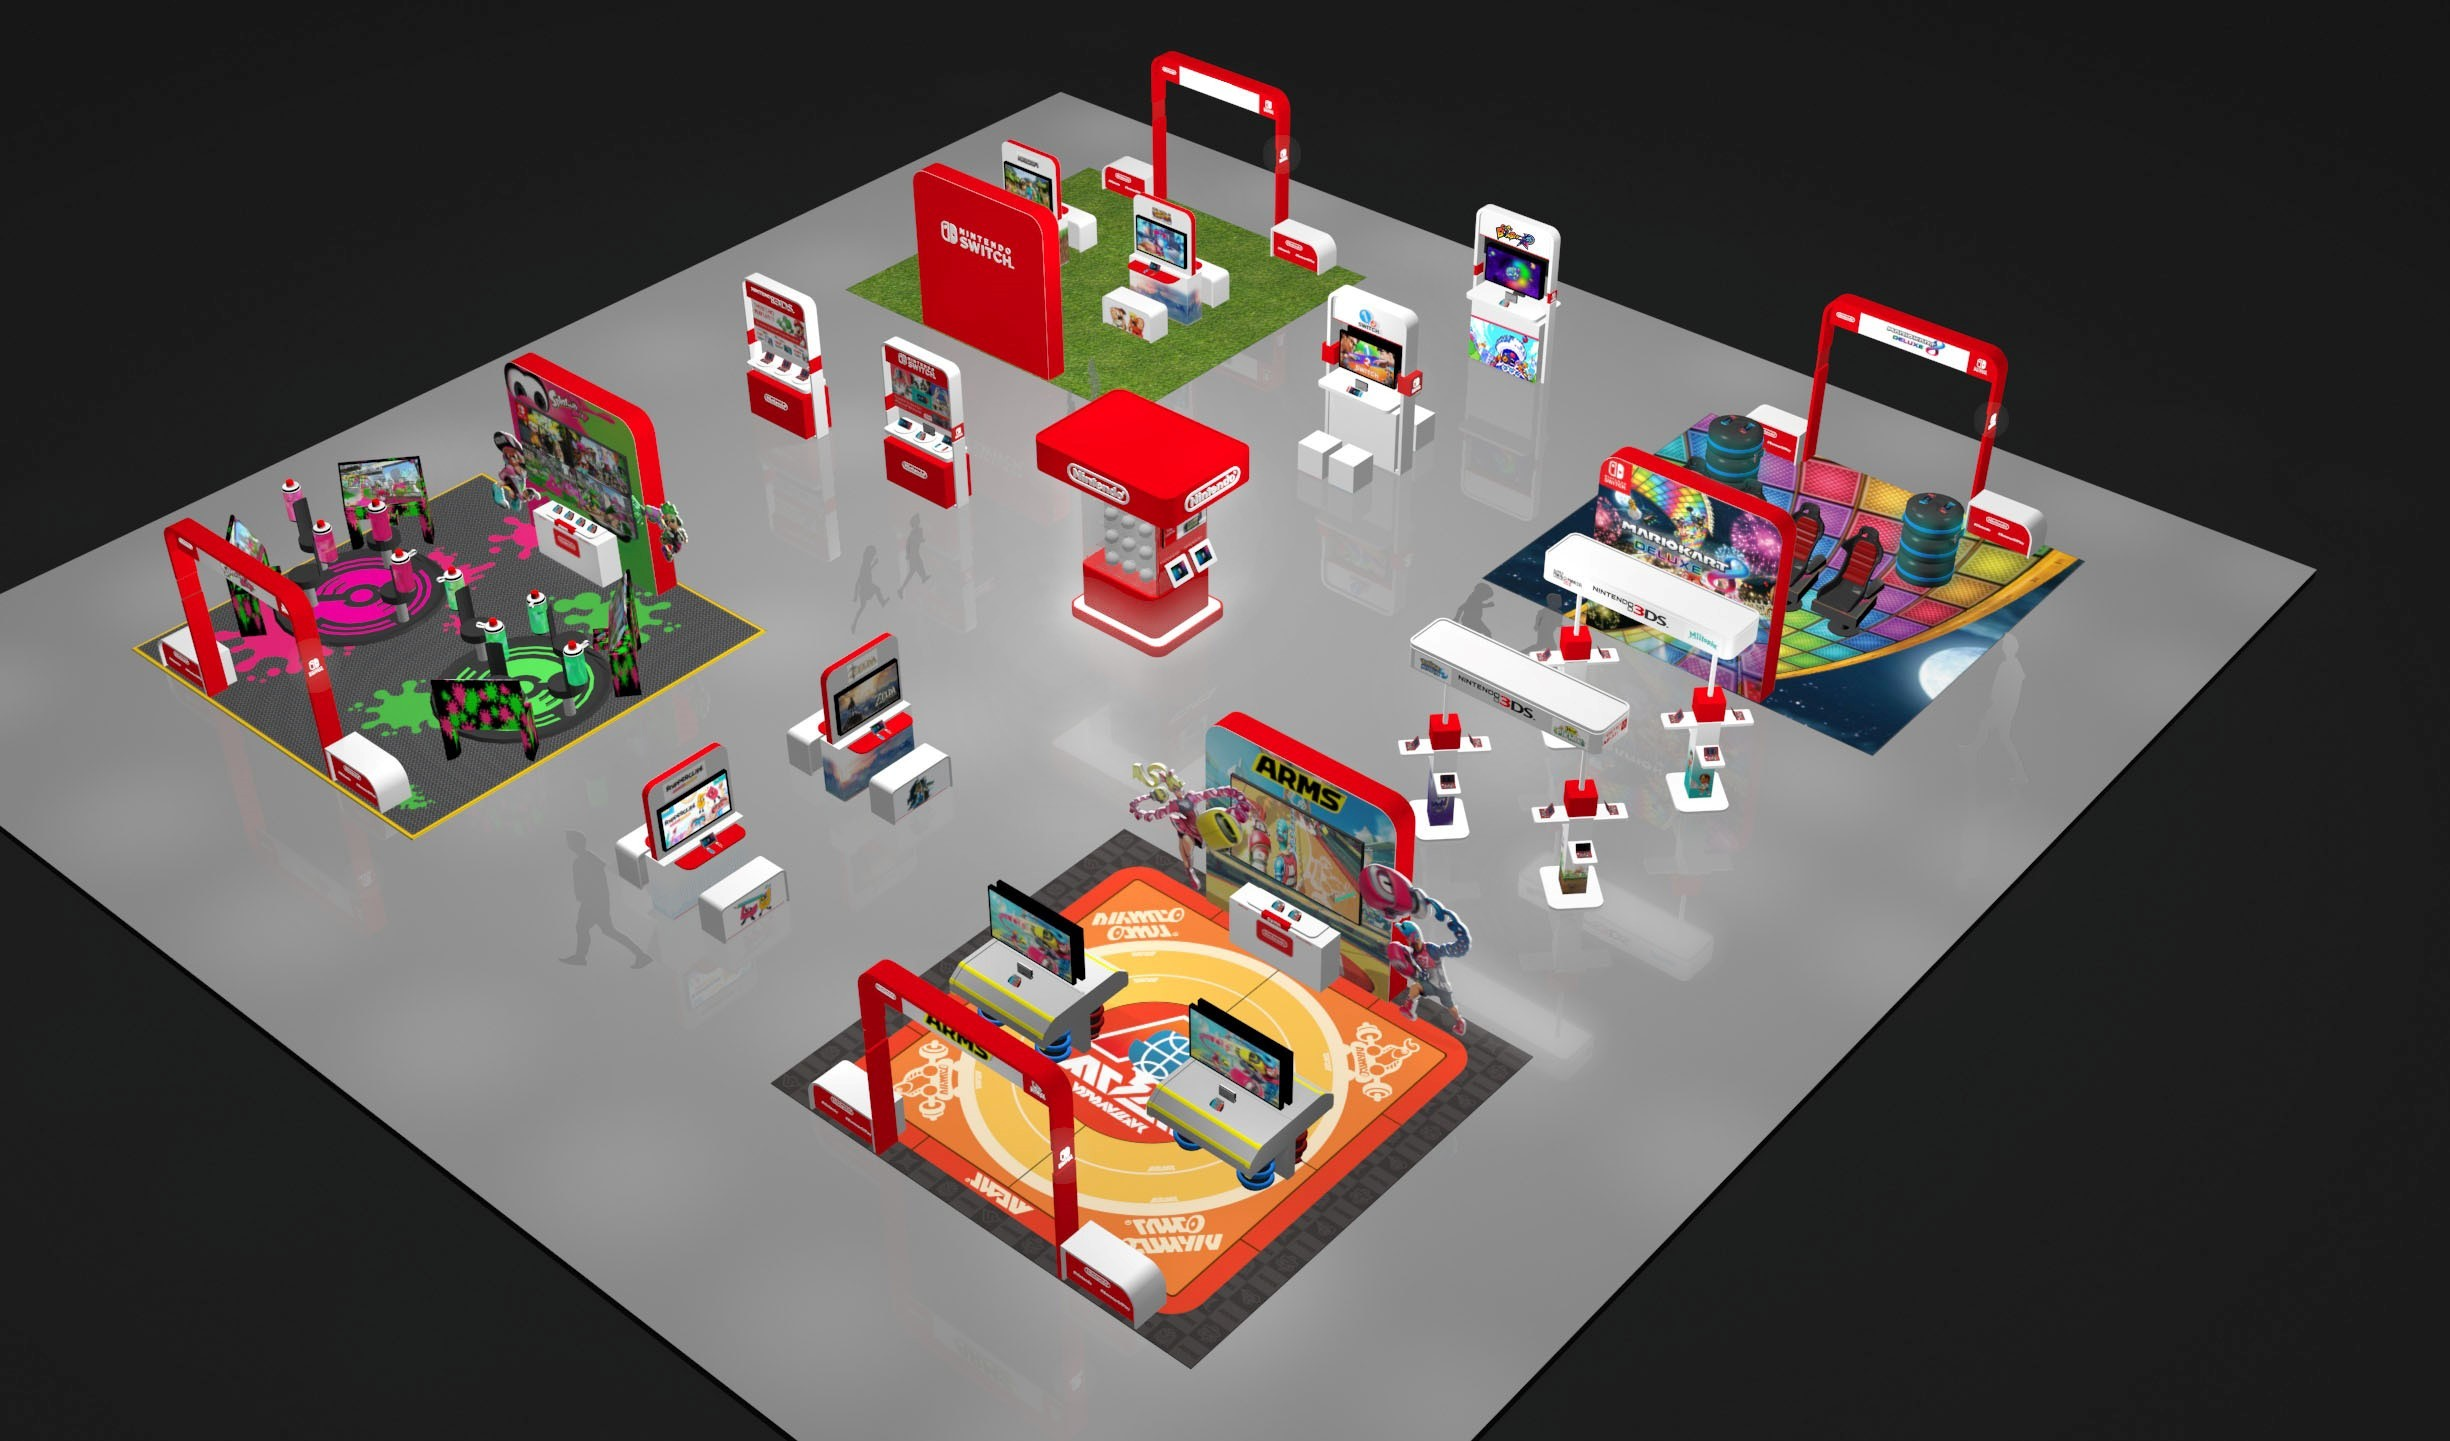 As part of its 2017 Summer of Play tour, Nintendo is taking its Nintendo Switch and Nintendo 3DS family of systems across the country so families everywhere can experience the latest installments in these beloved franchises firsthand. (Graphic: Business Wire)